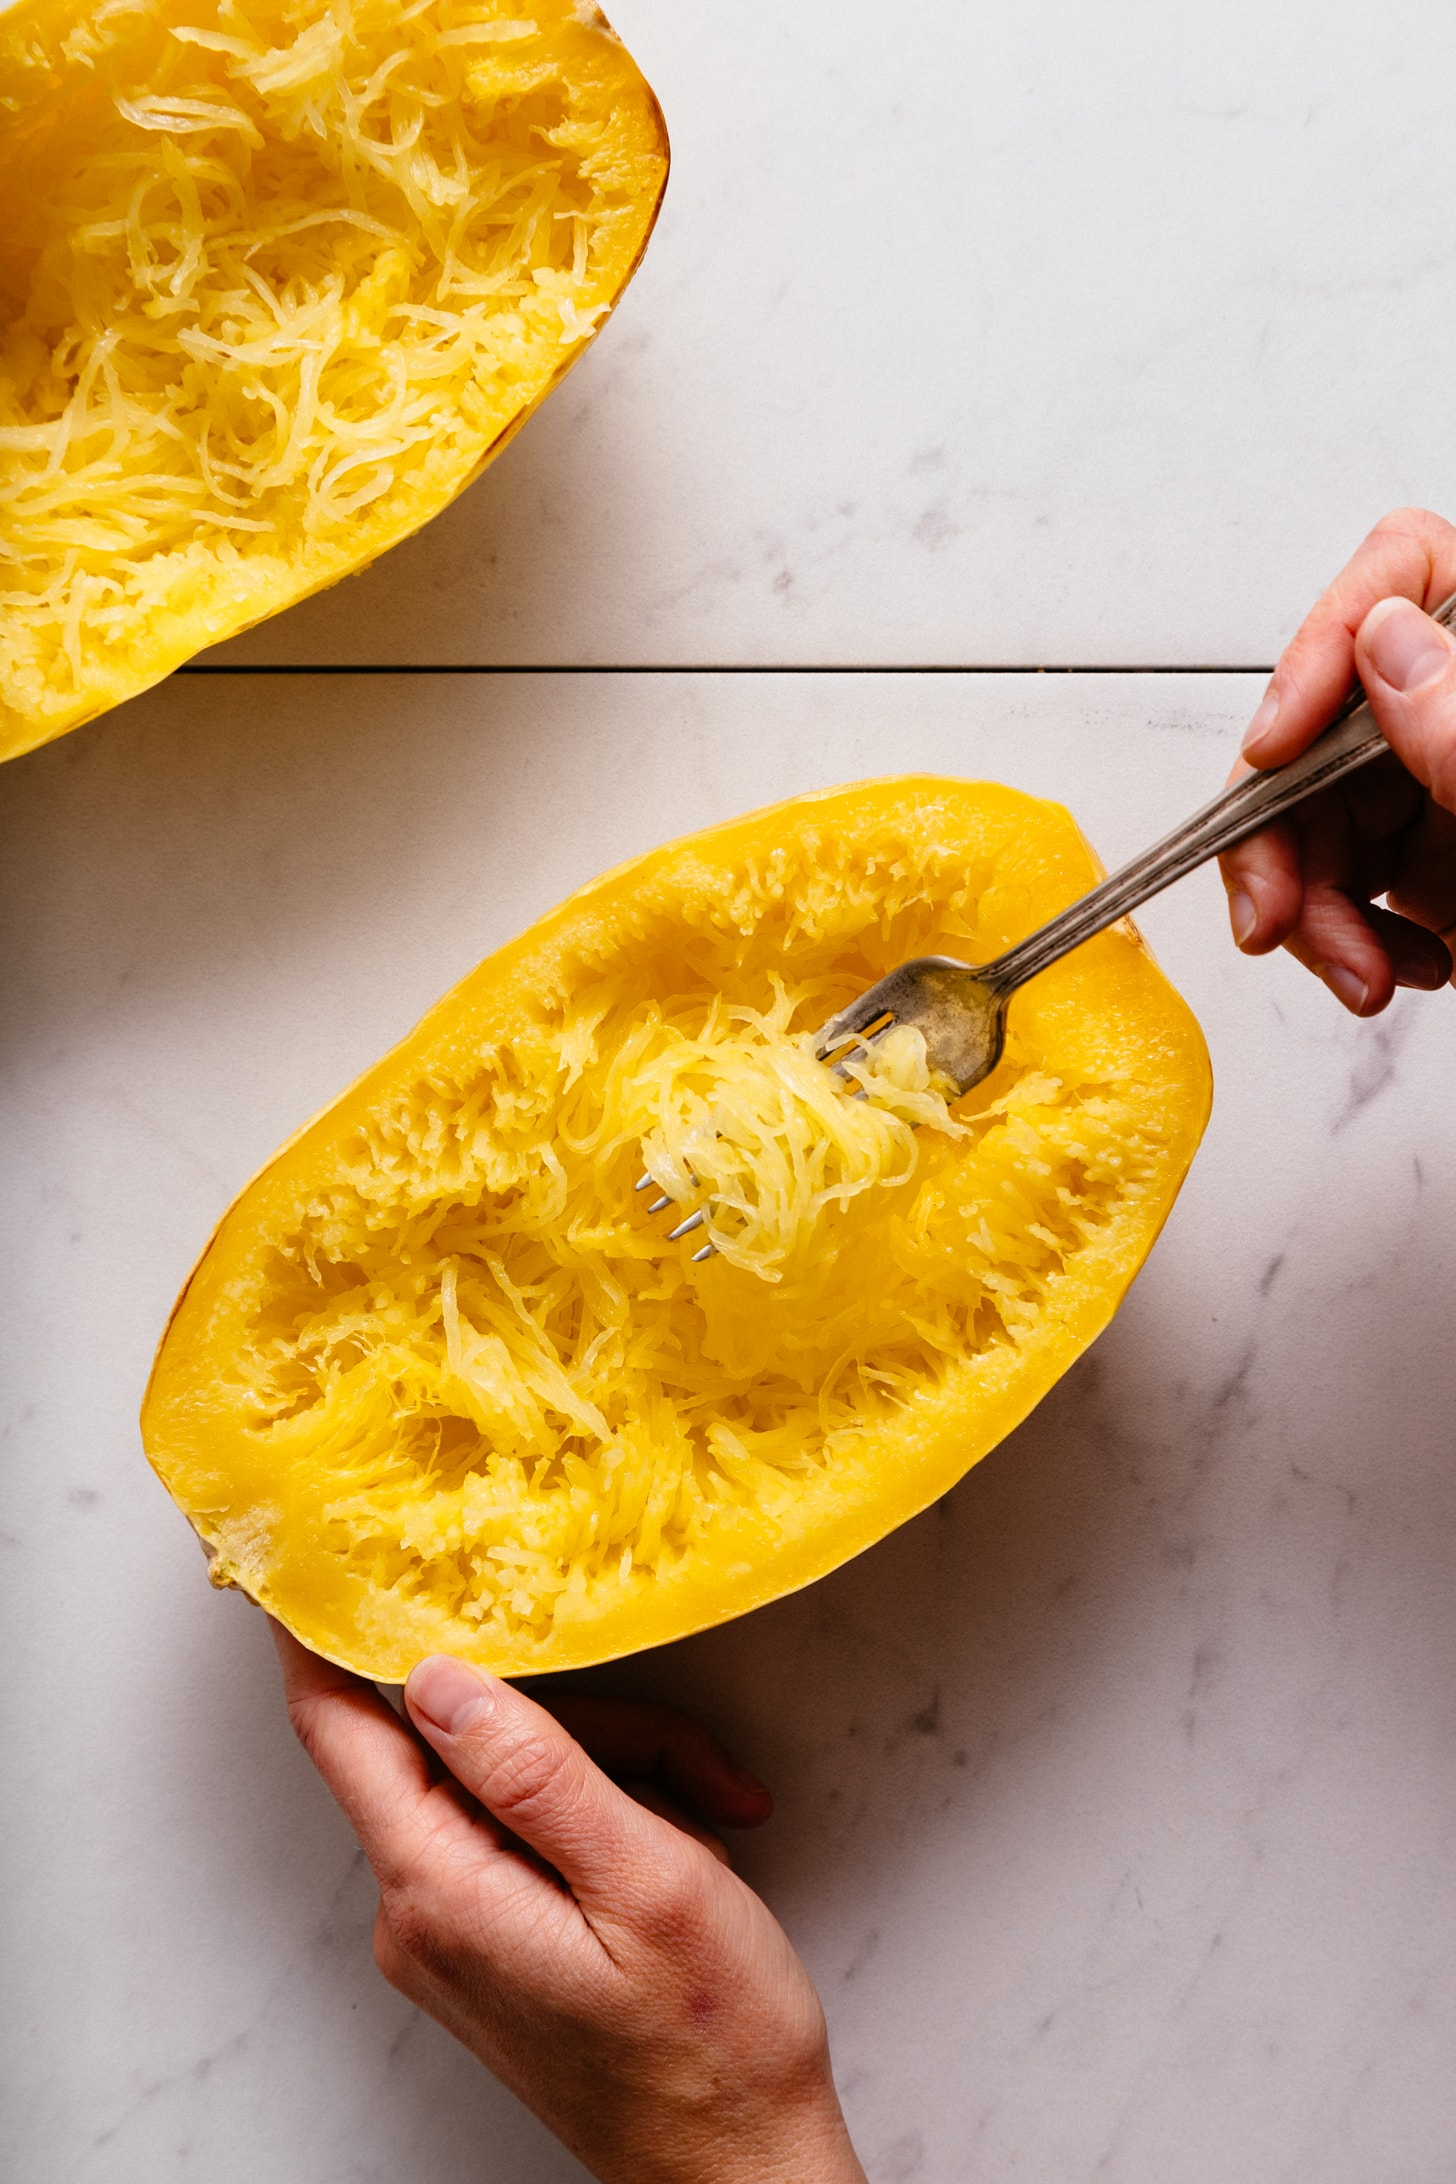 Using a fork to remove strands from a perfectly roasted spaghetti squash